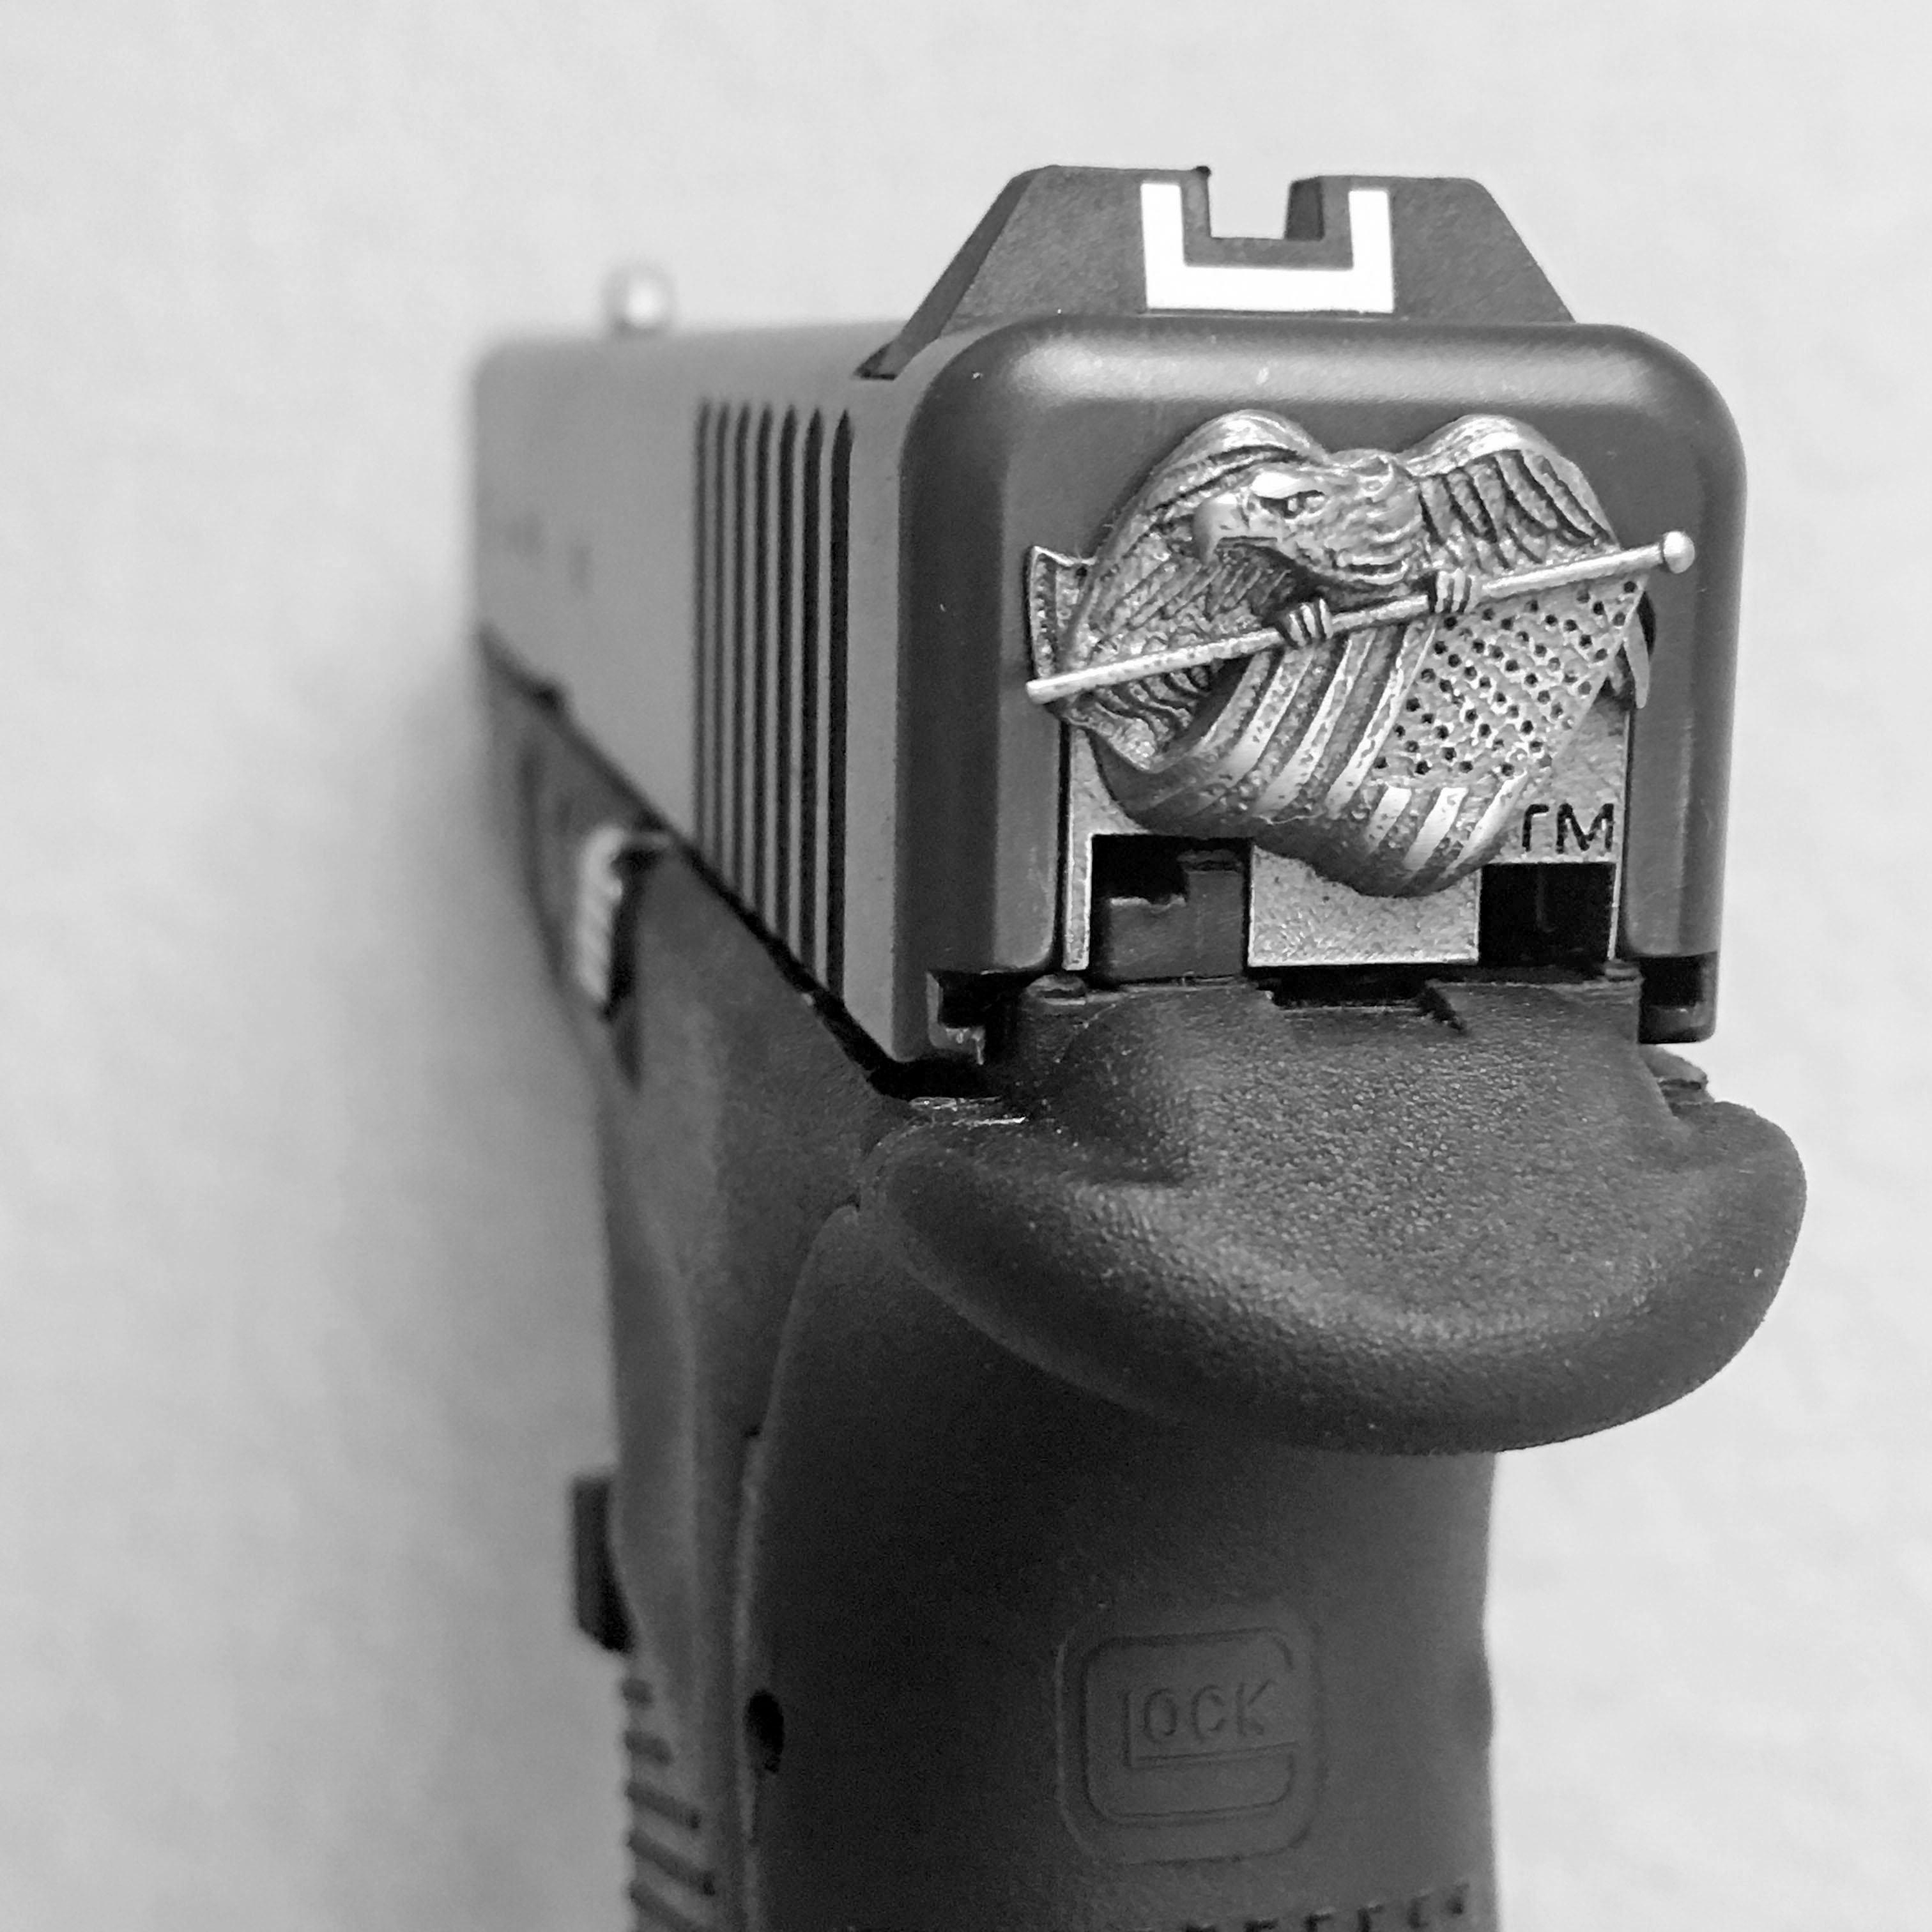 Lead Tactical Glock 174 Eagle And Flag Slide Rear Back Plate